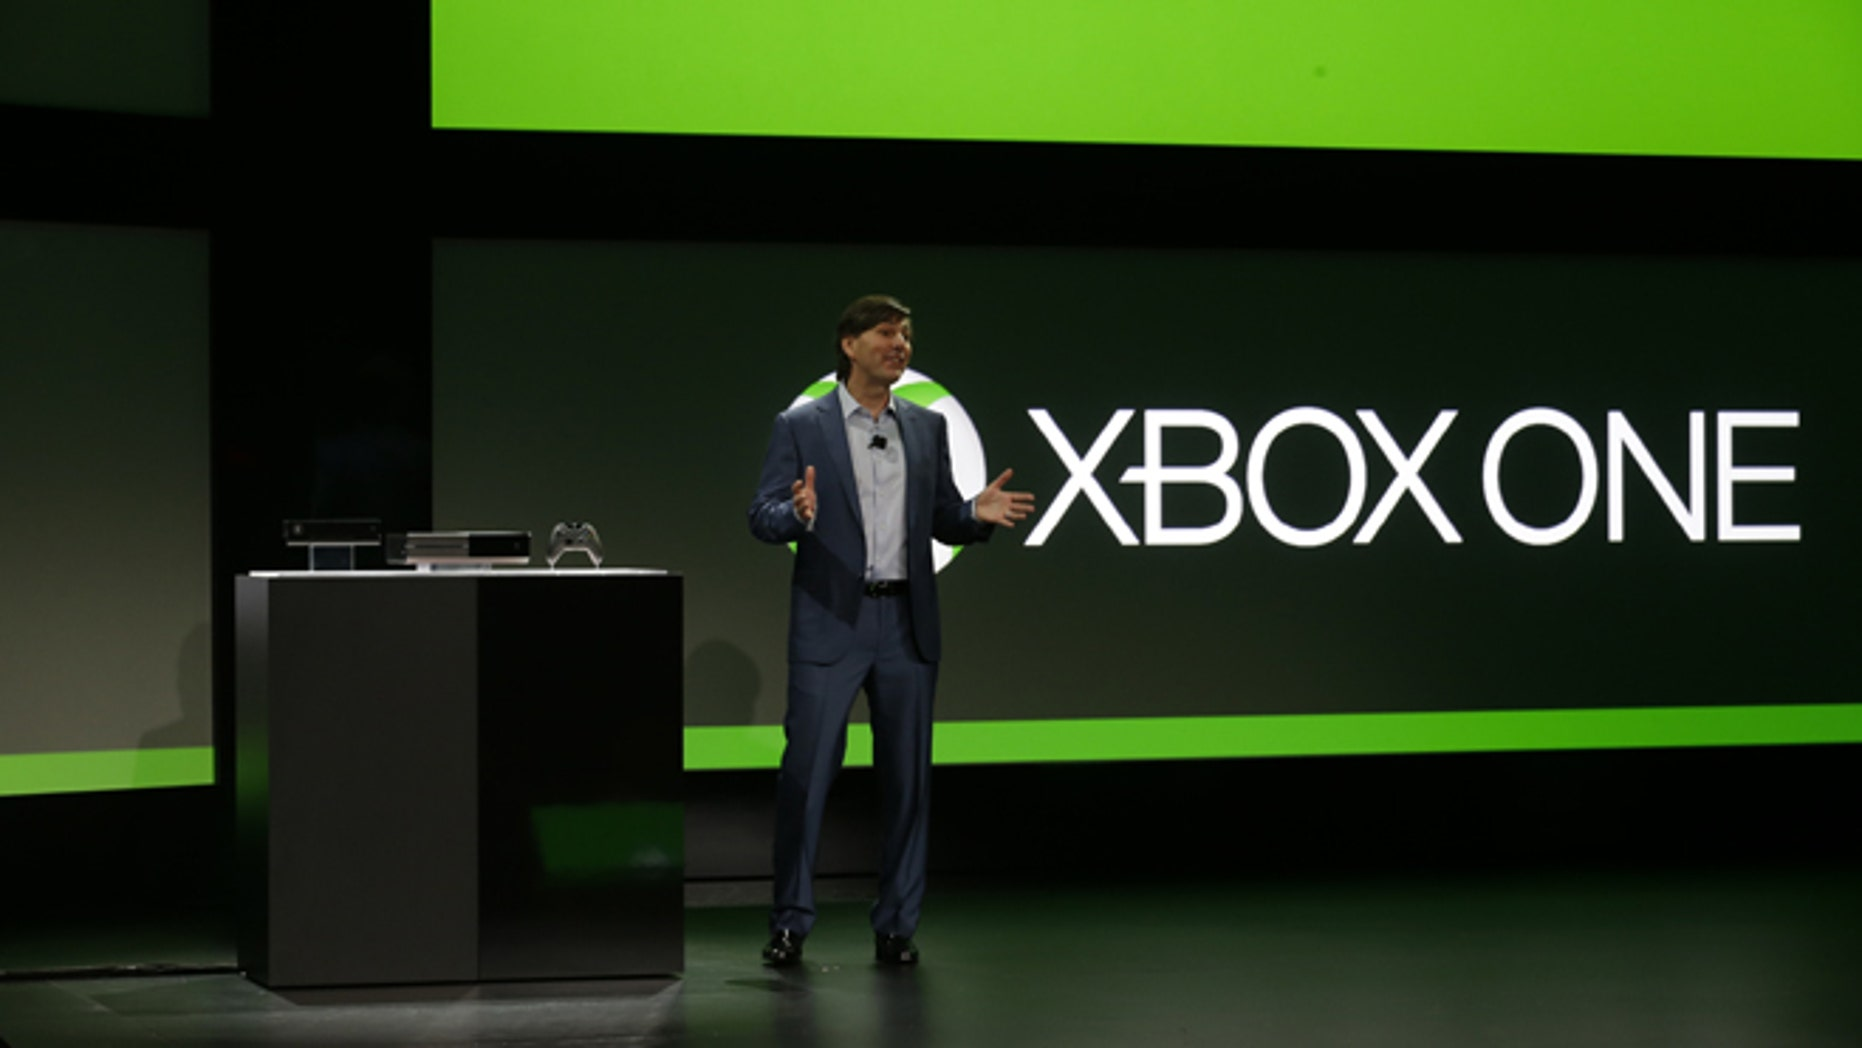 File photo - May 21, 2013: Microsoft's Don Mattrick unveils the next-generation Xbox entertainment and gaming console system at an event in Redmond, Wash. It's been eight years since the launch of the Xbox 360. (AP Photo/Ted S. Warren)